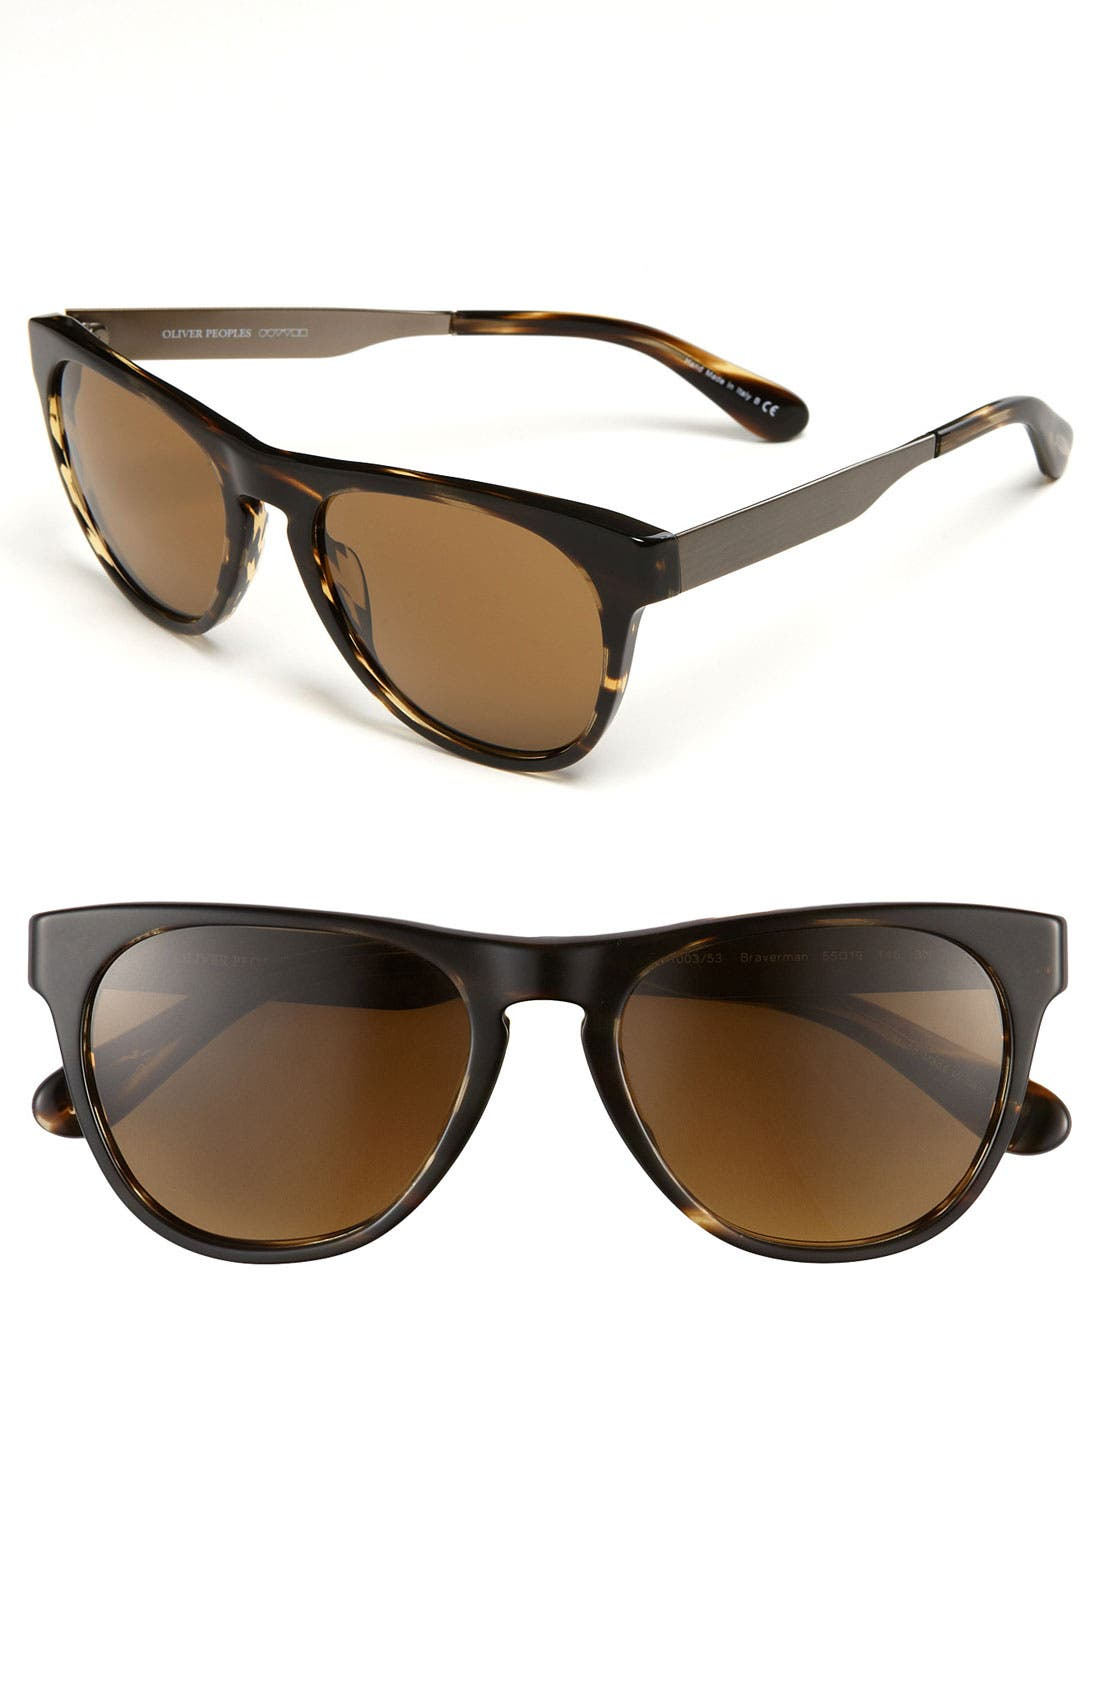 Alternate Image 1 Selected - Oliver Peoples 55mm Sunglasses